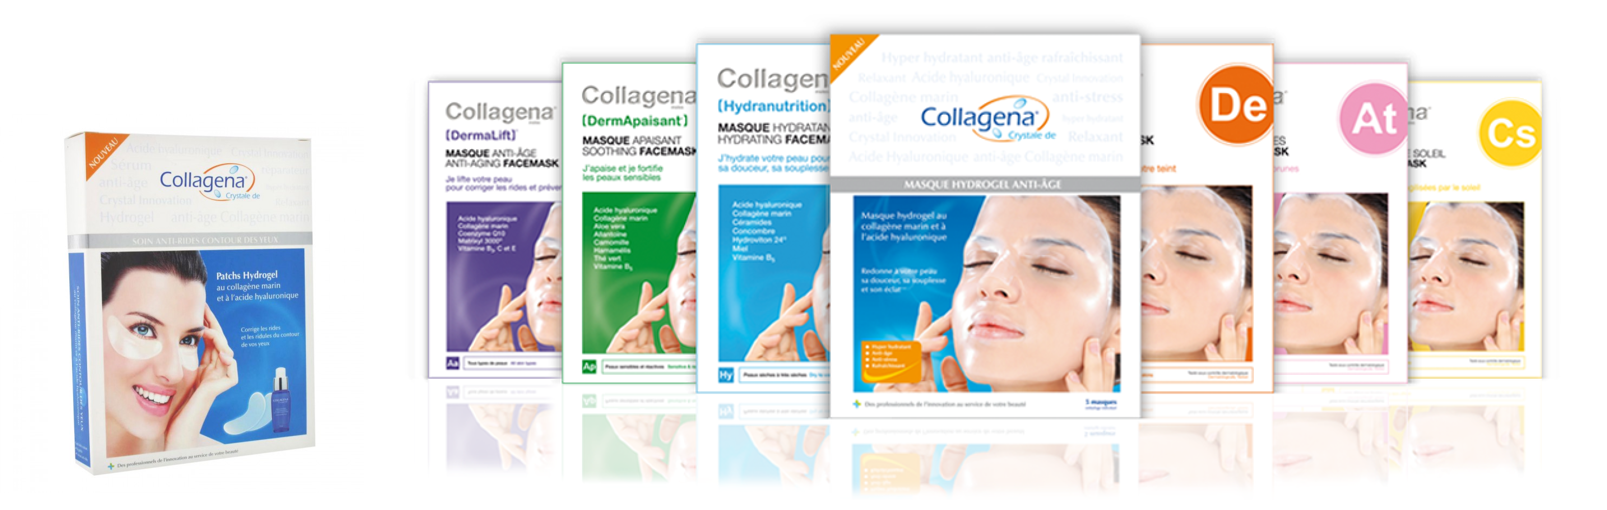 COLLAGENA patchs et masques